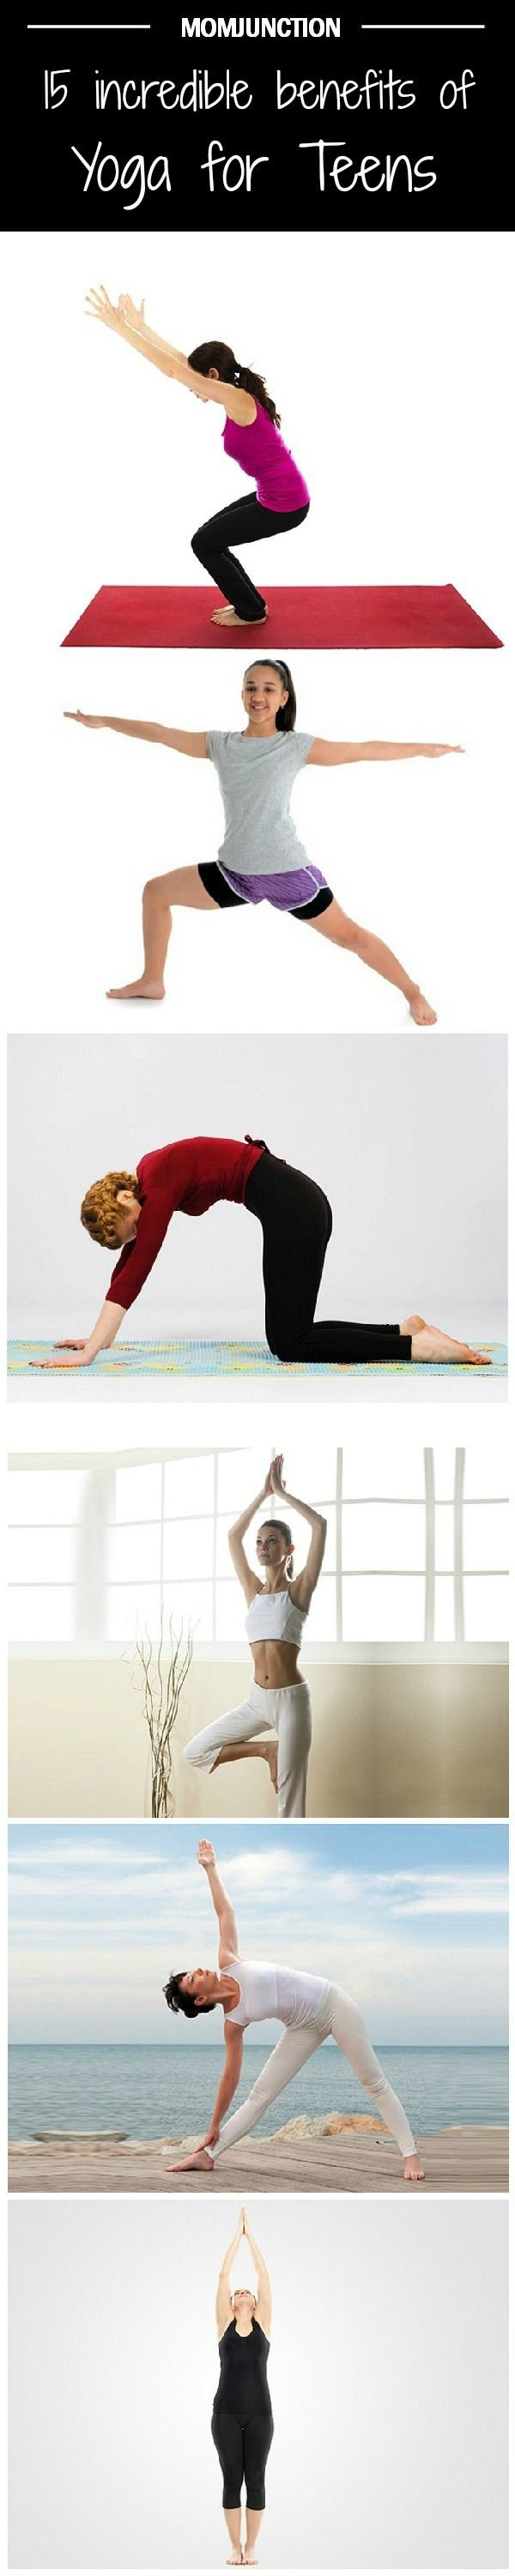 Top 15 Benefits Of Yoga For Your Teenager: There are several benefits of yoga – physical, mental and spiritual. Here are the top 15 benefits of yoga for your teenager.  This is great!  Love it! #fb Gaileee